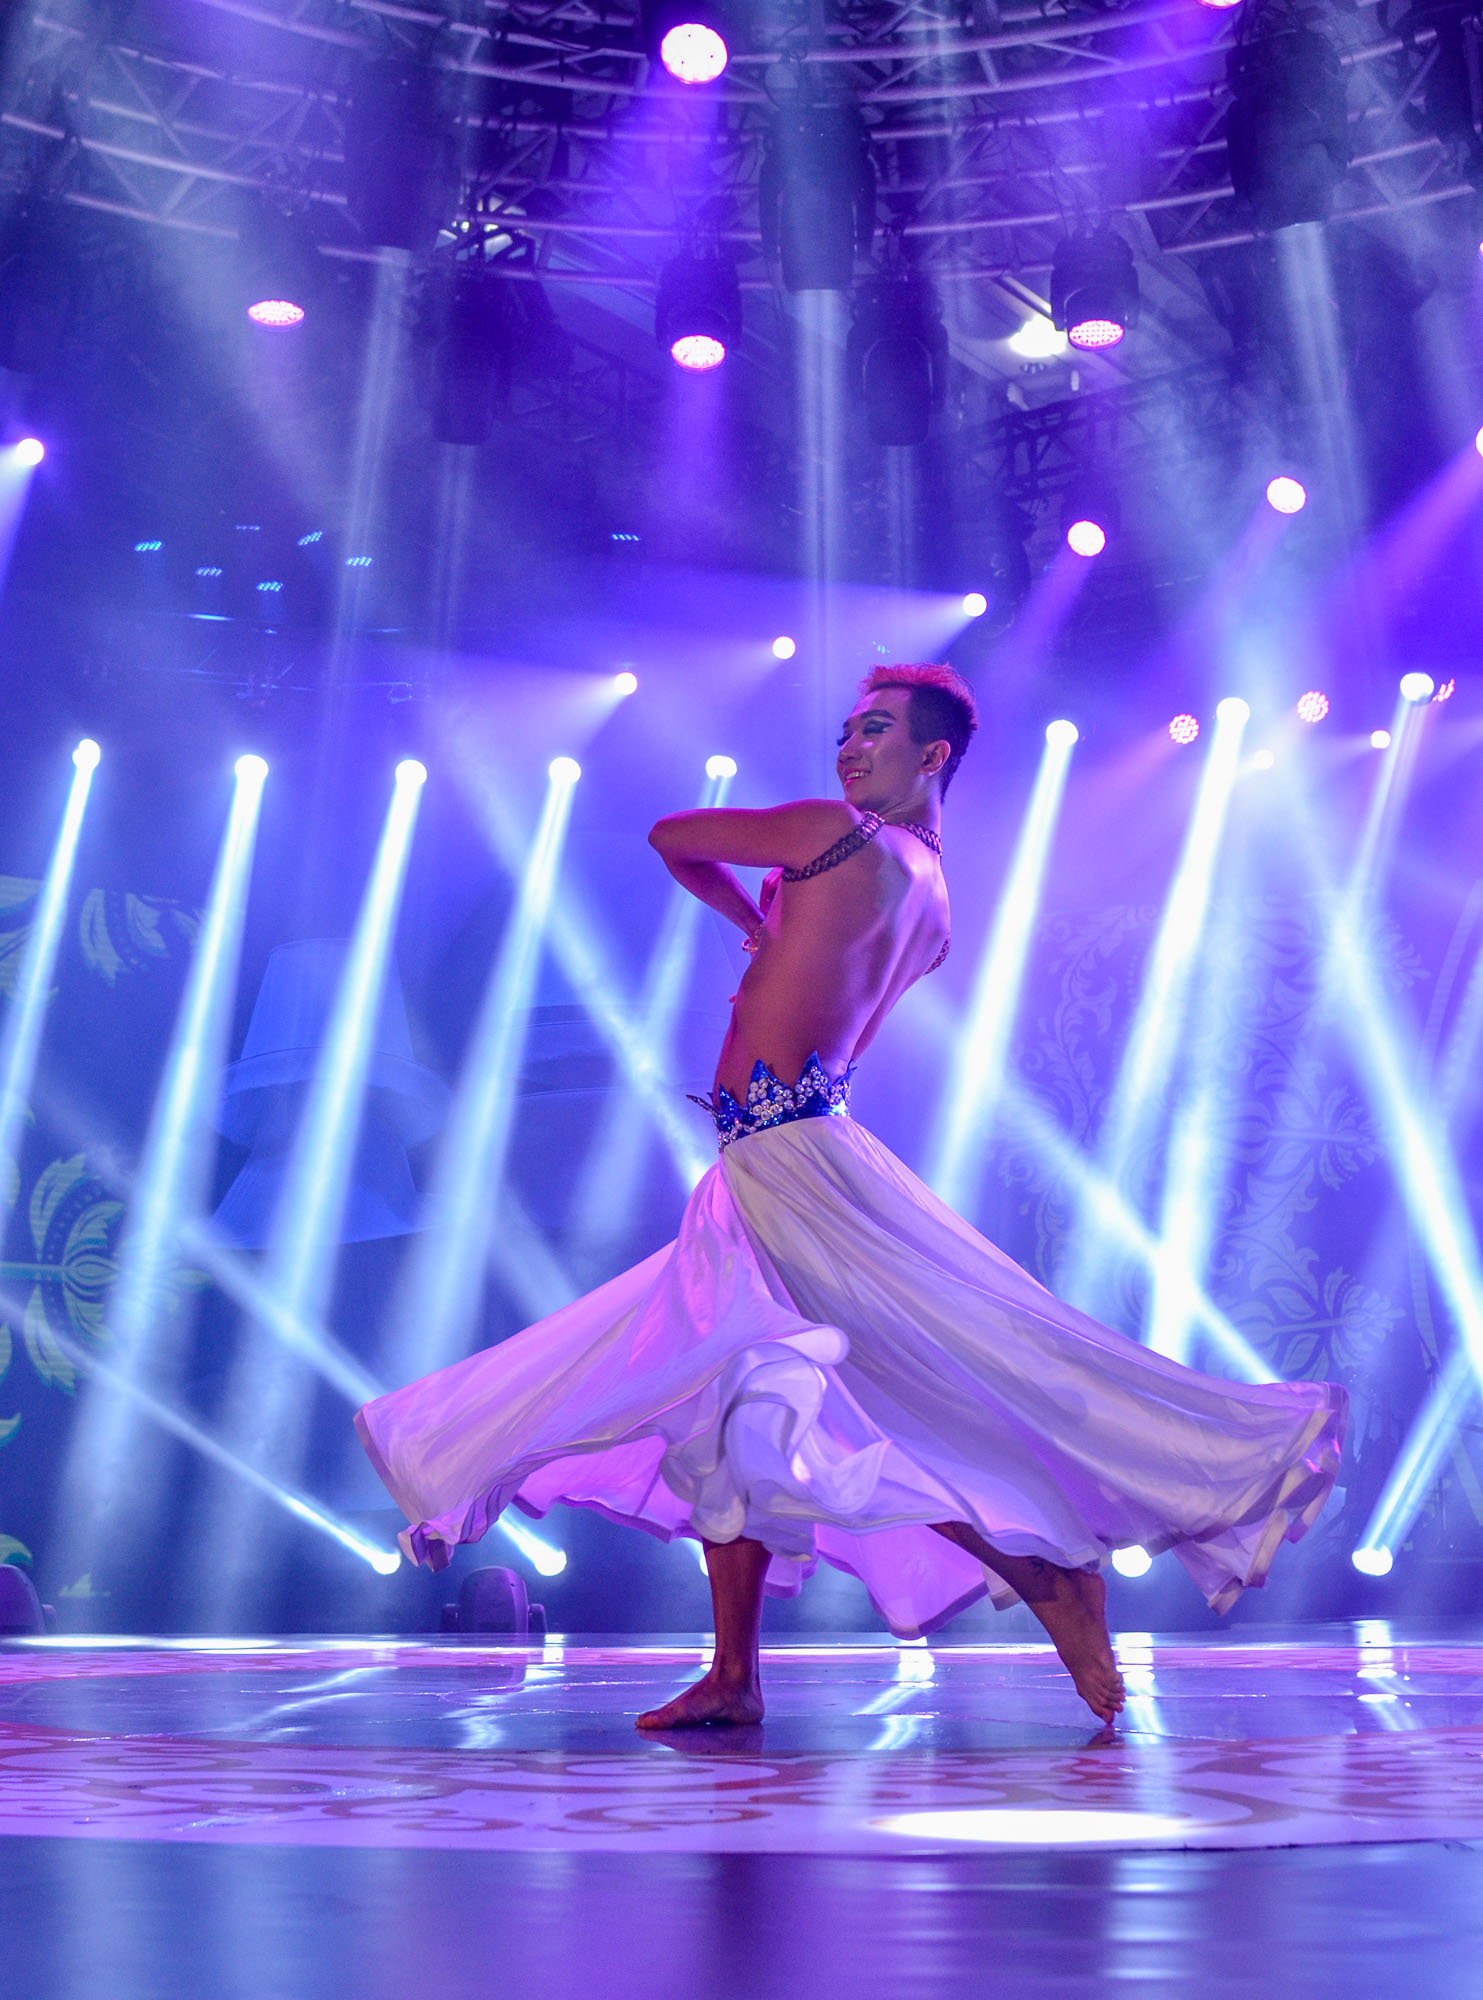 Digital photography of young male belly dancer contestant